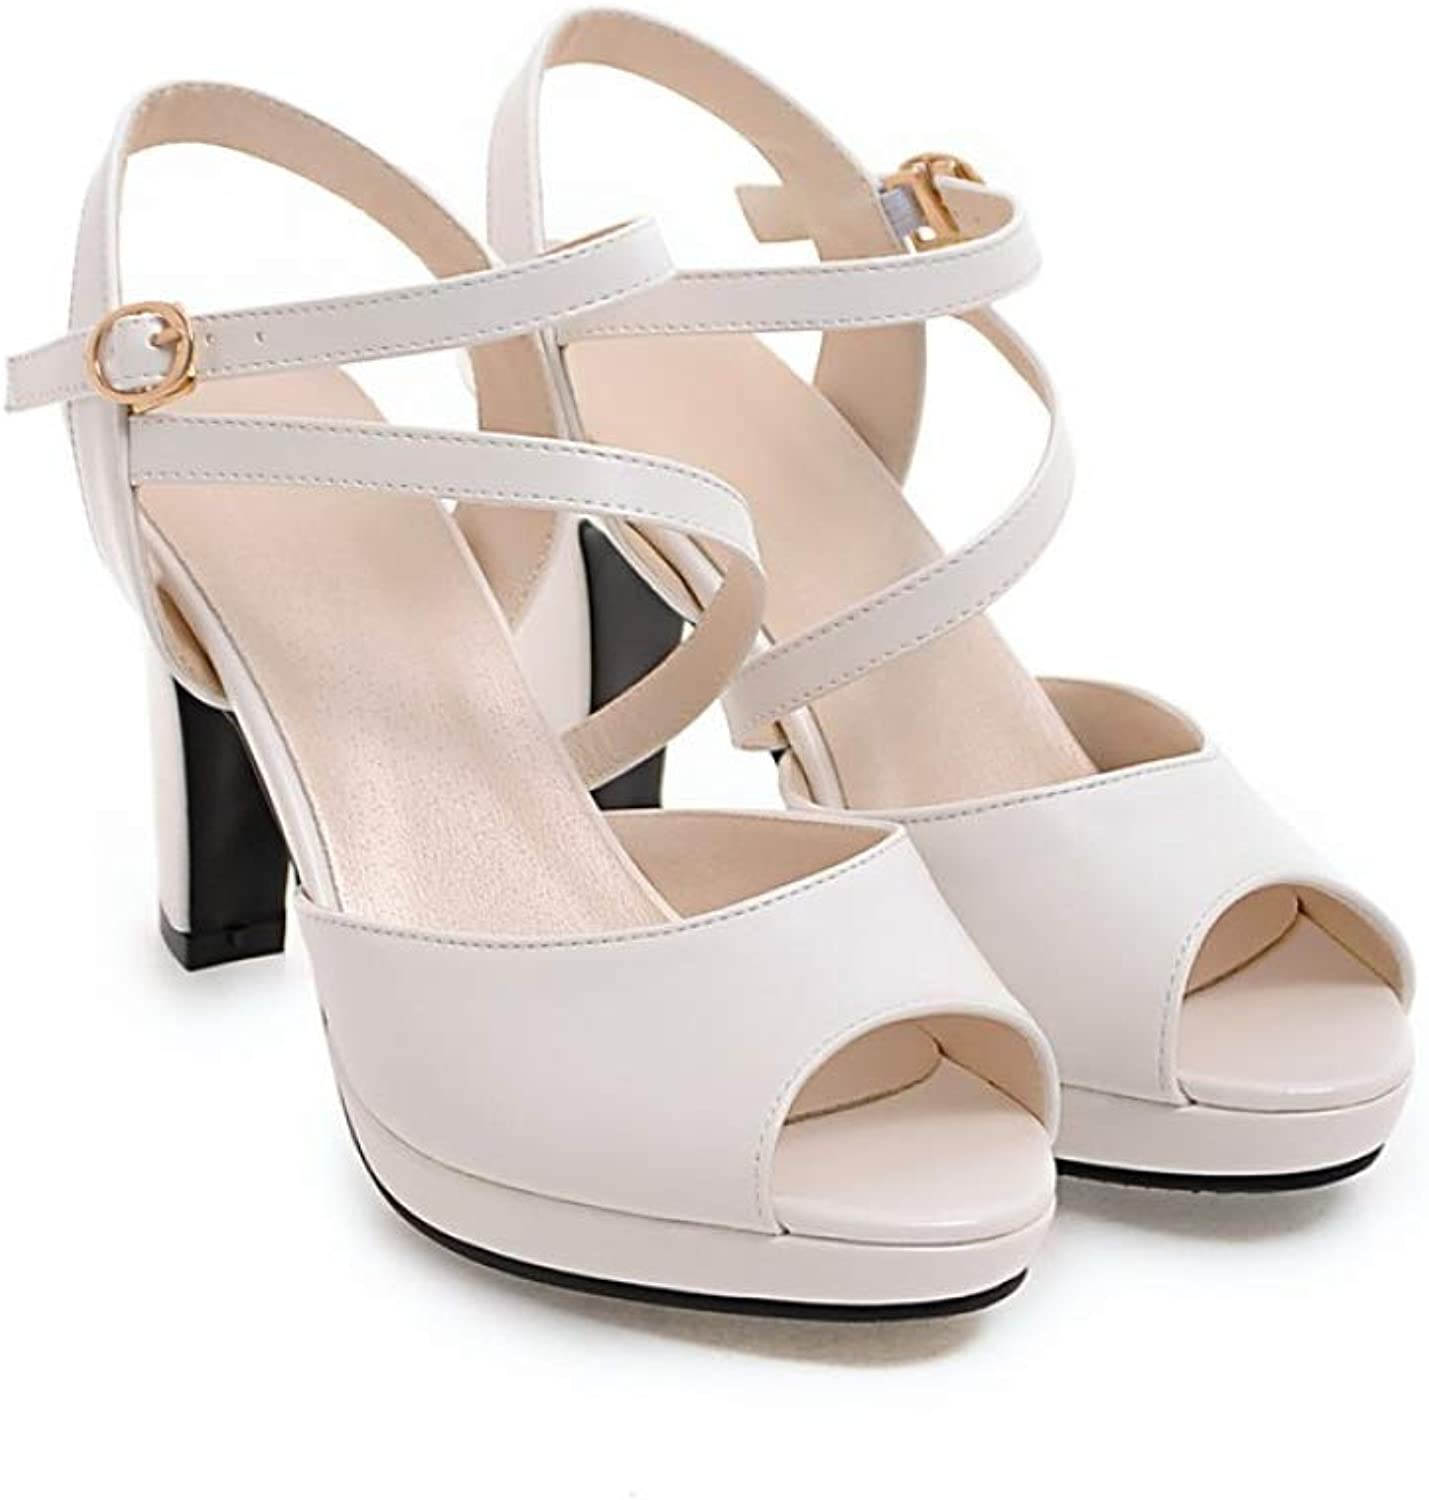 Summer Women Sandals Sexy High Heel Gladiator Sandal Women Fashion Cross-Tied Sexy Peep Toe Ladies shoes White Pink Black